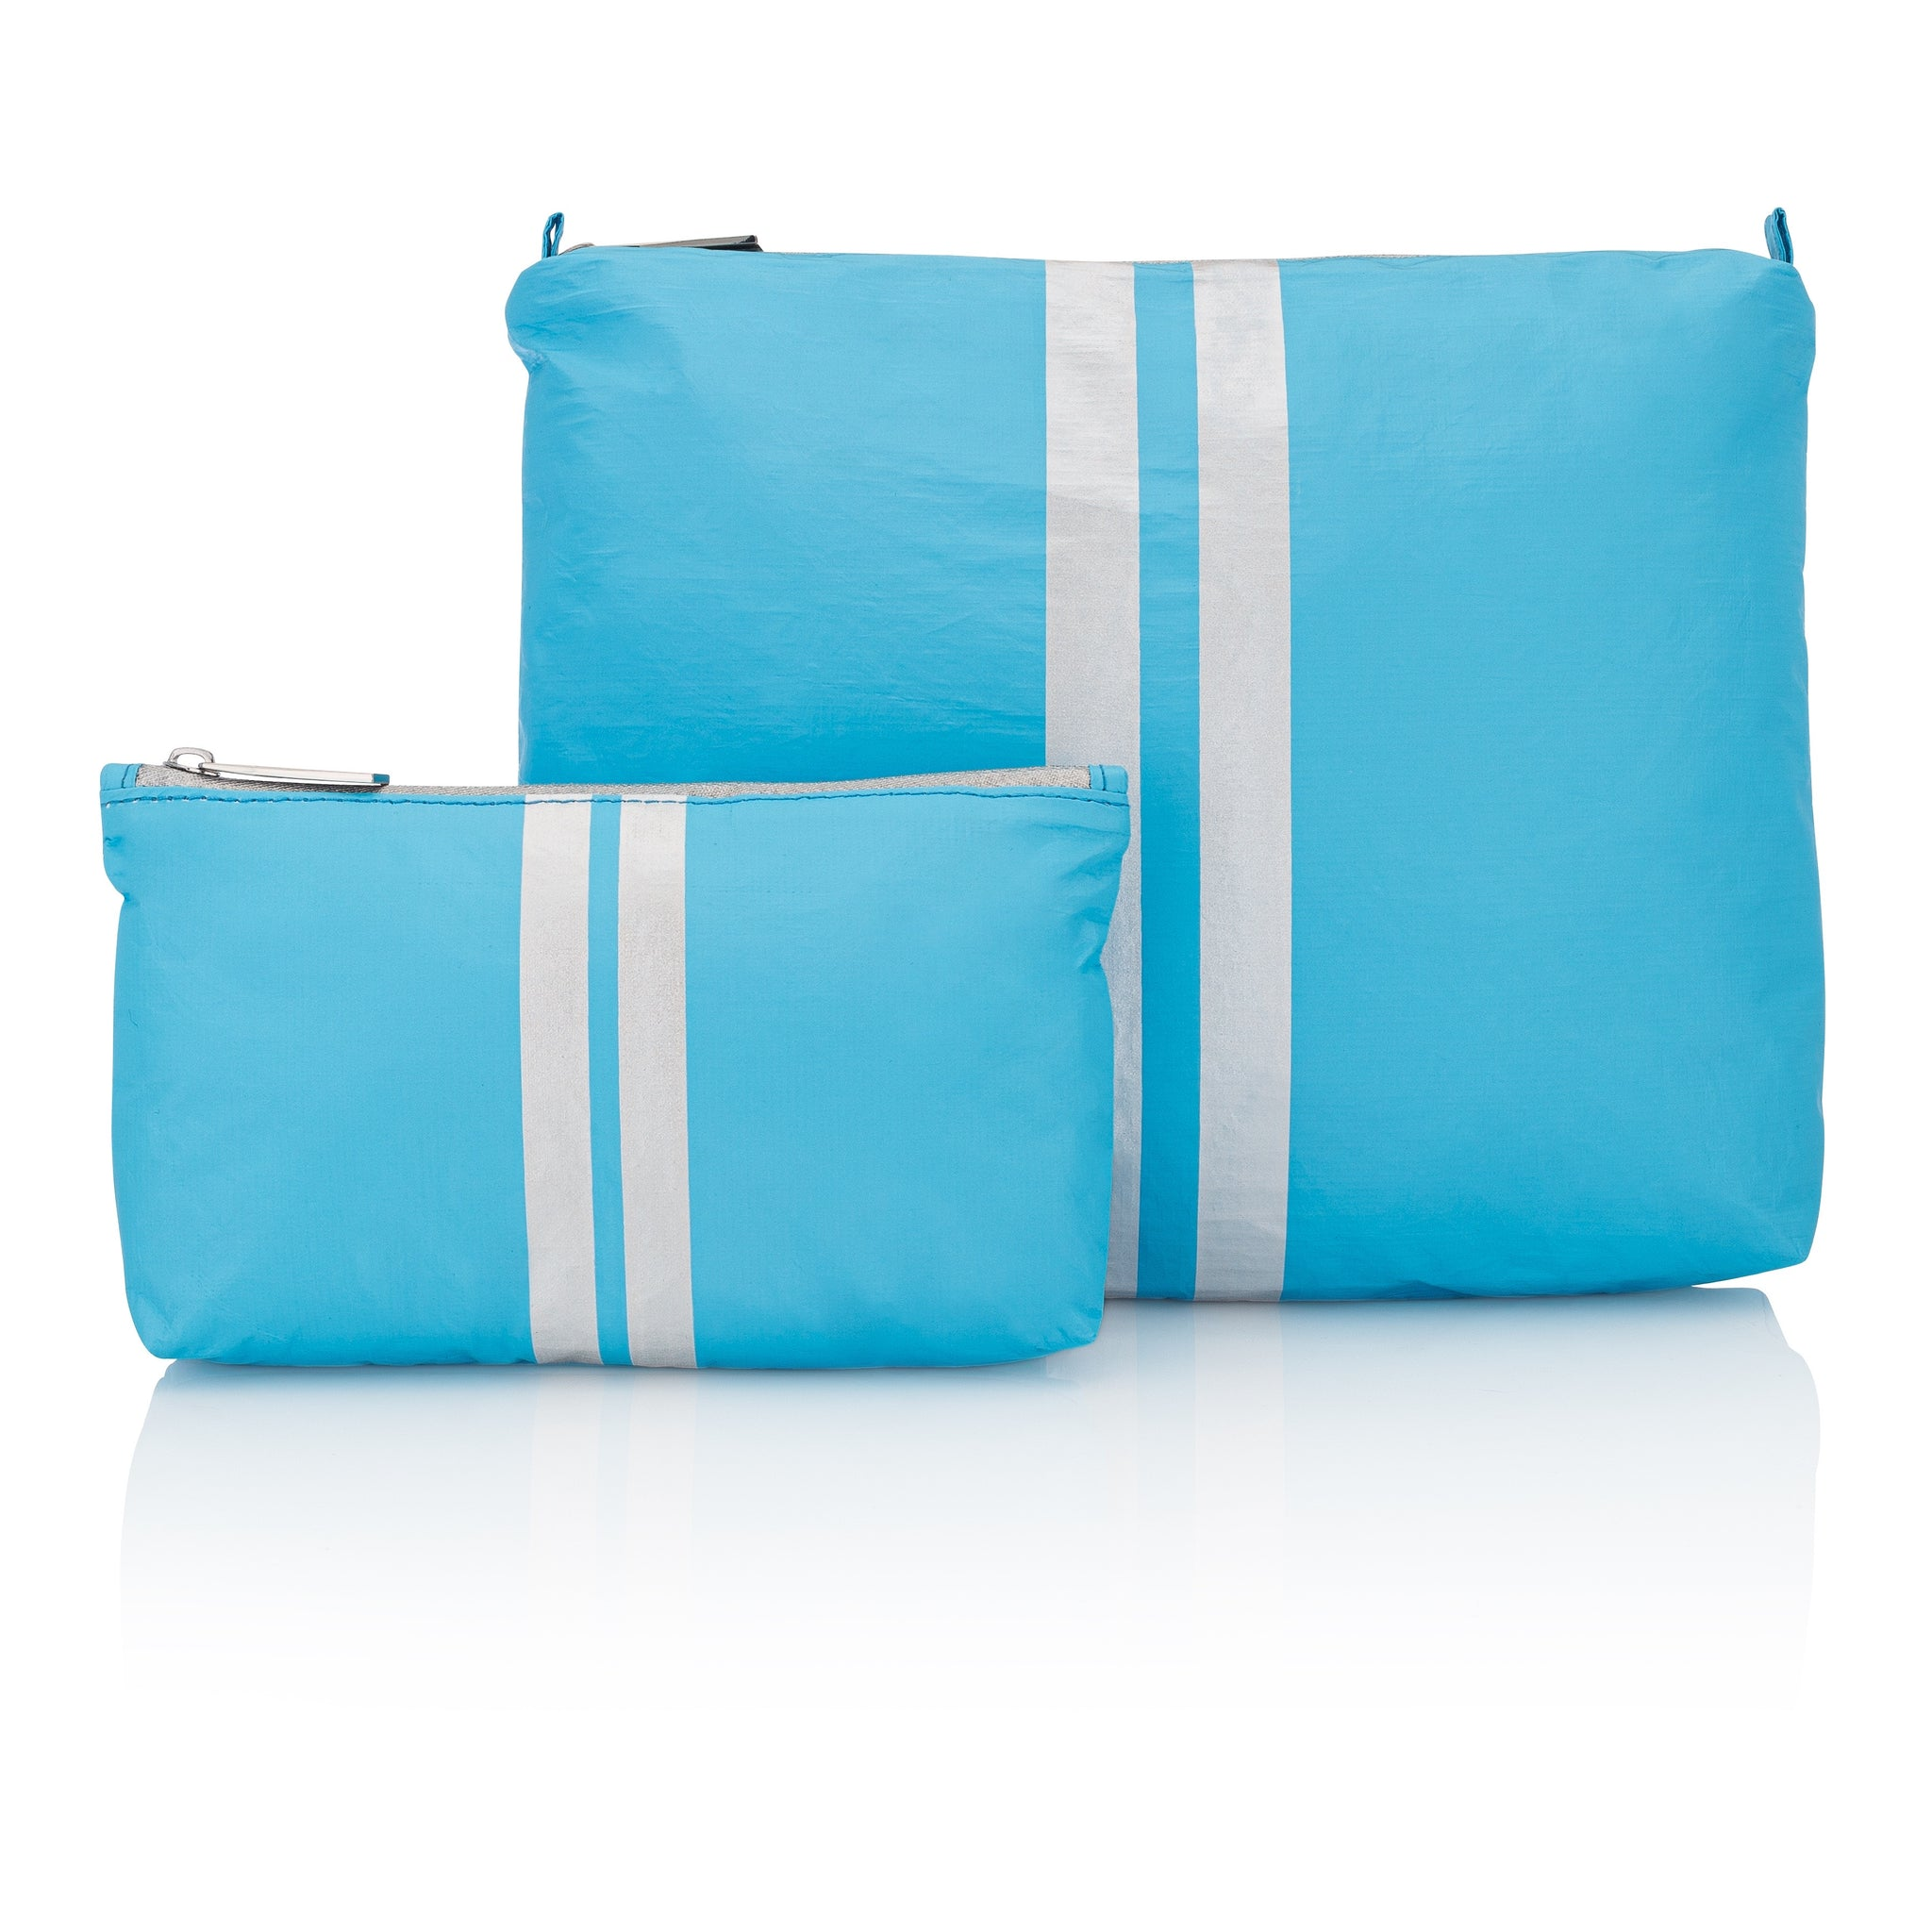 Cute Travel Pouch Set - Set of Two - Sky Blue with Shimmer White Stripes